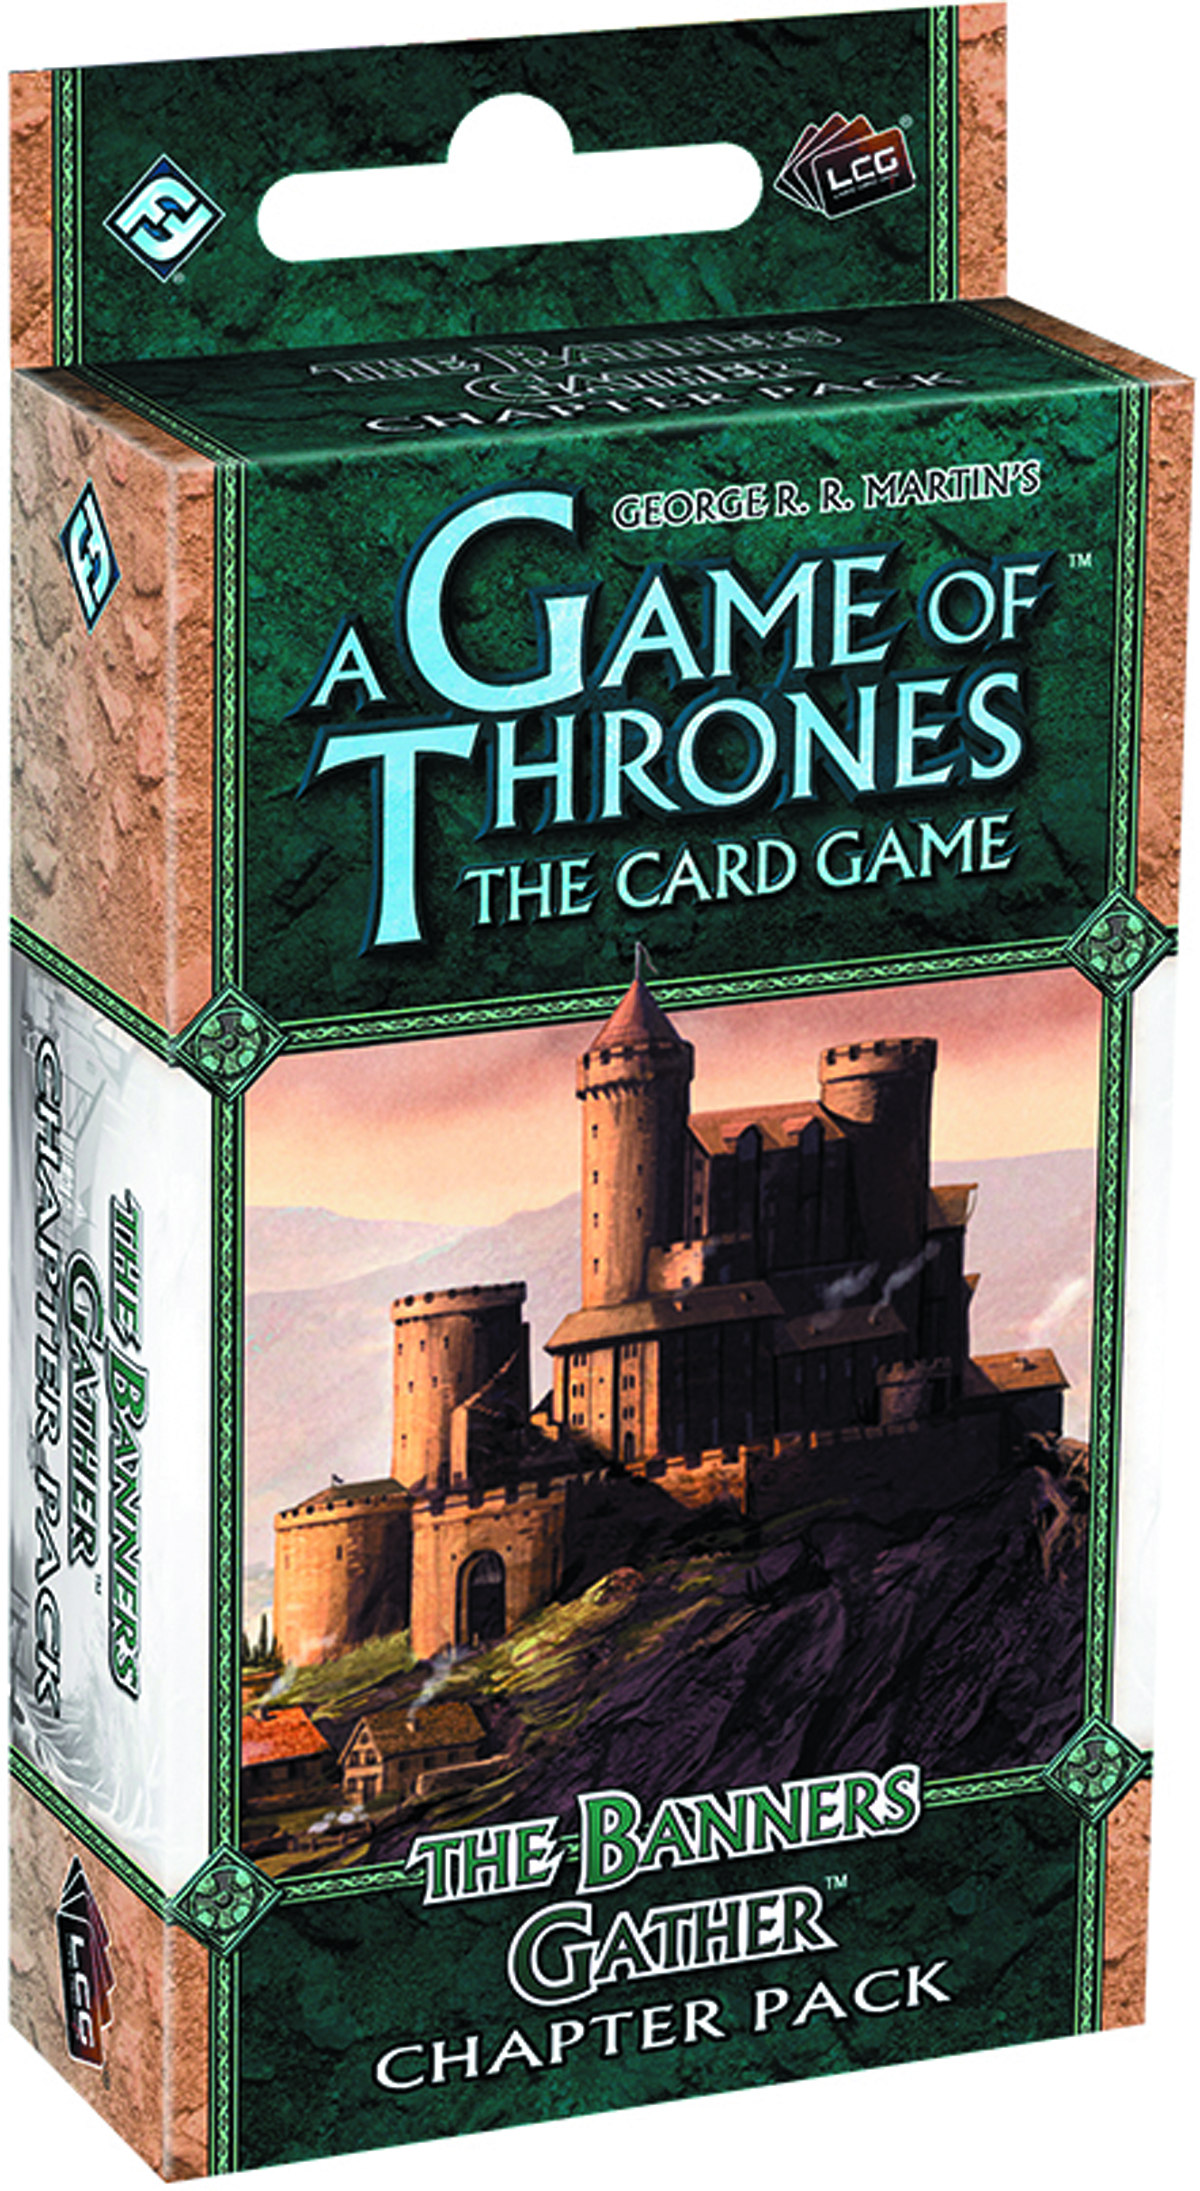 GAME THRONES LCG THE BANNERS GATHER CHAPTER PACK